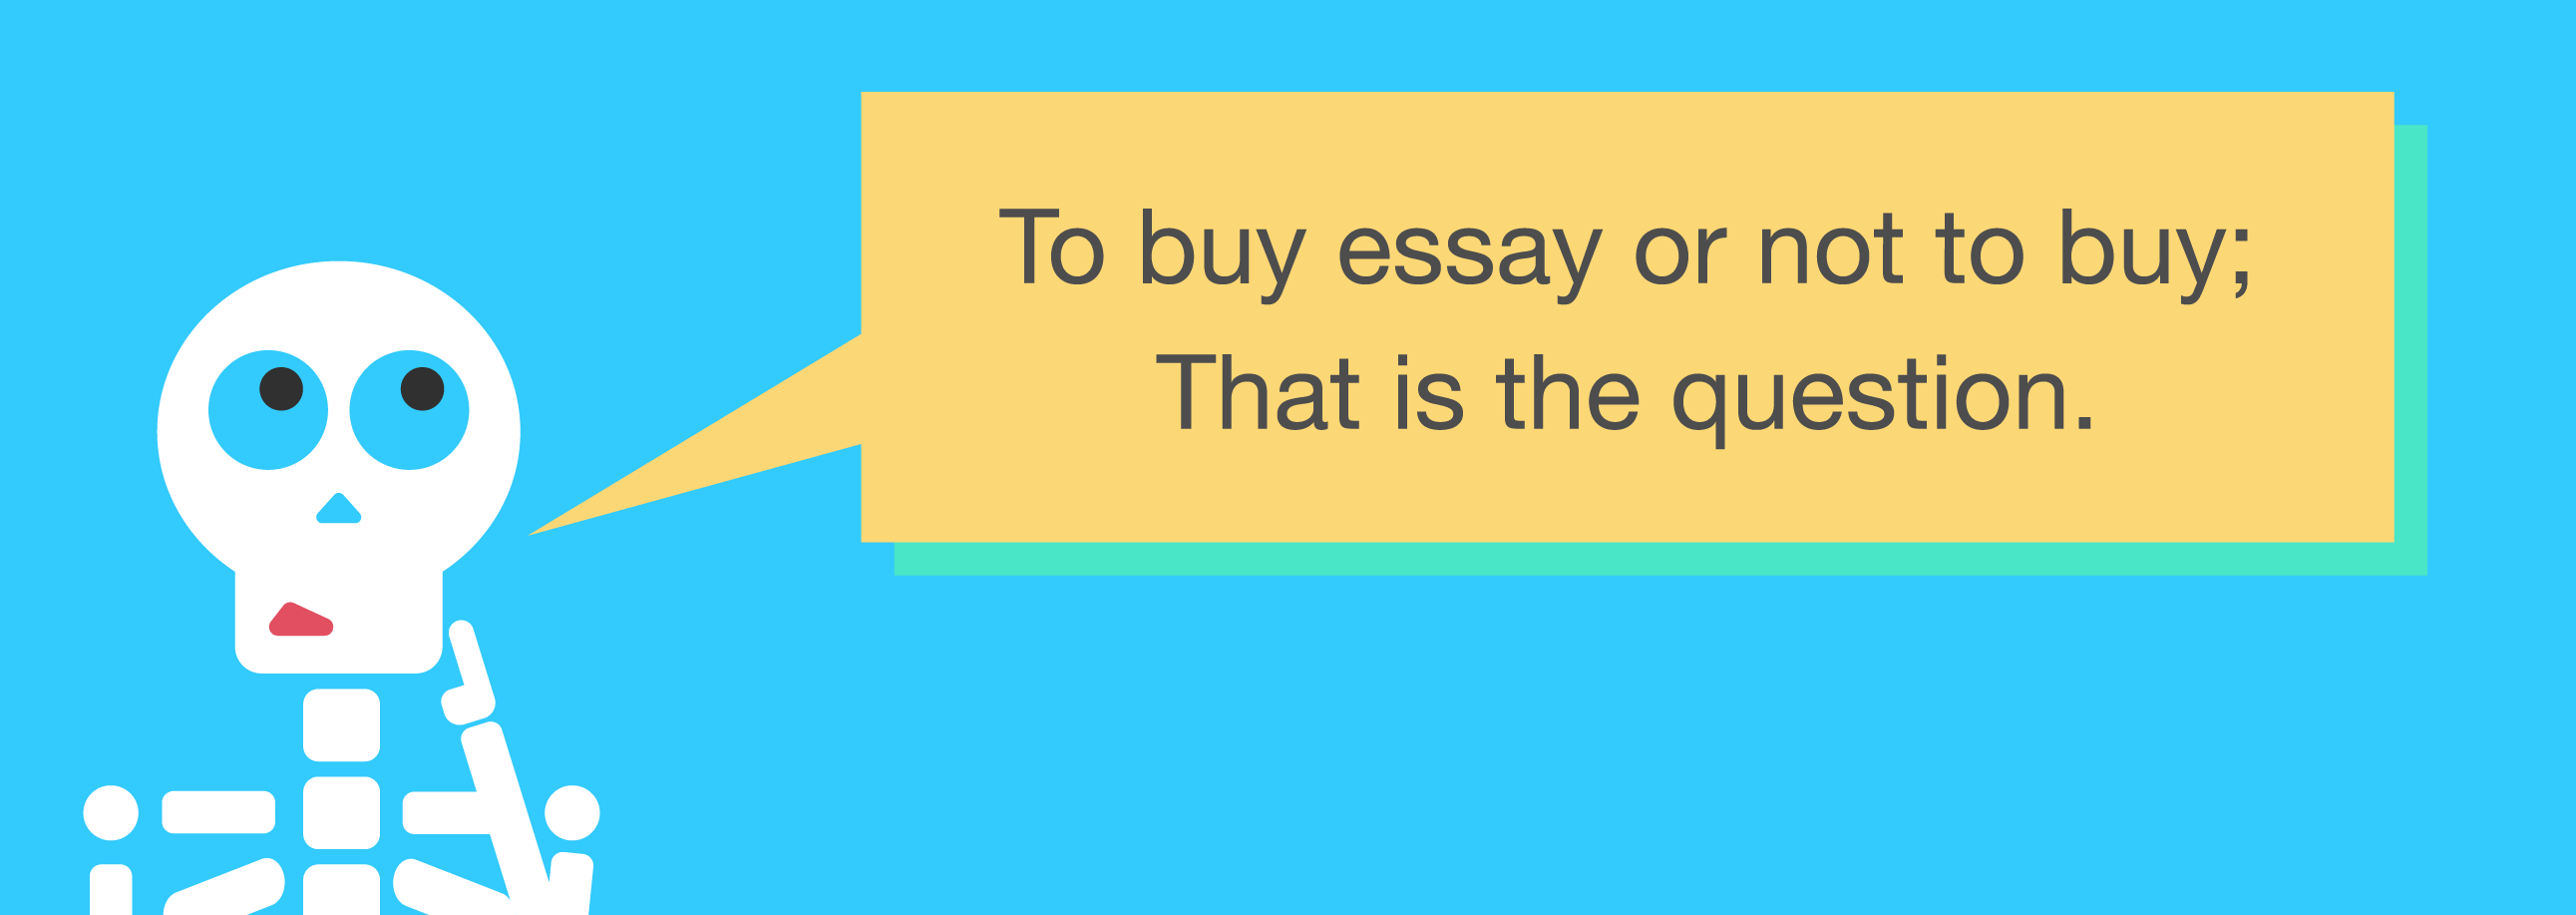 is it safe to order essay online